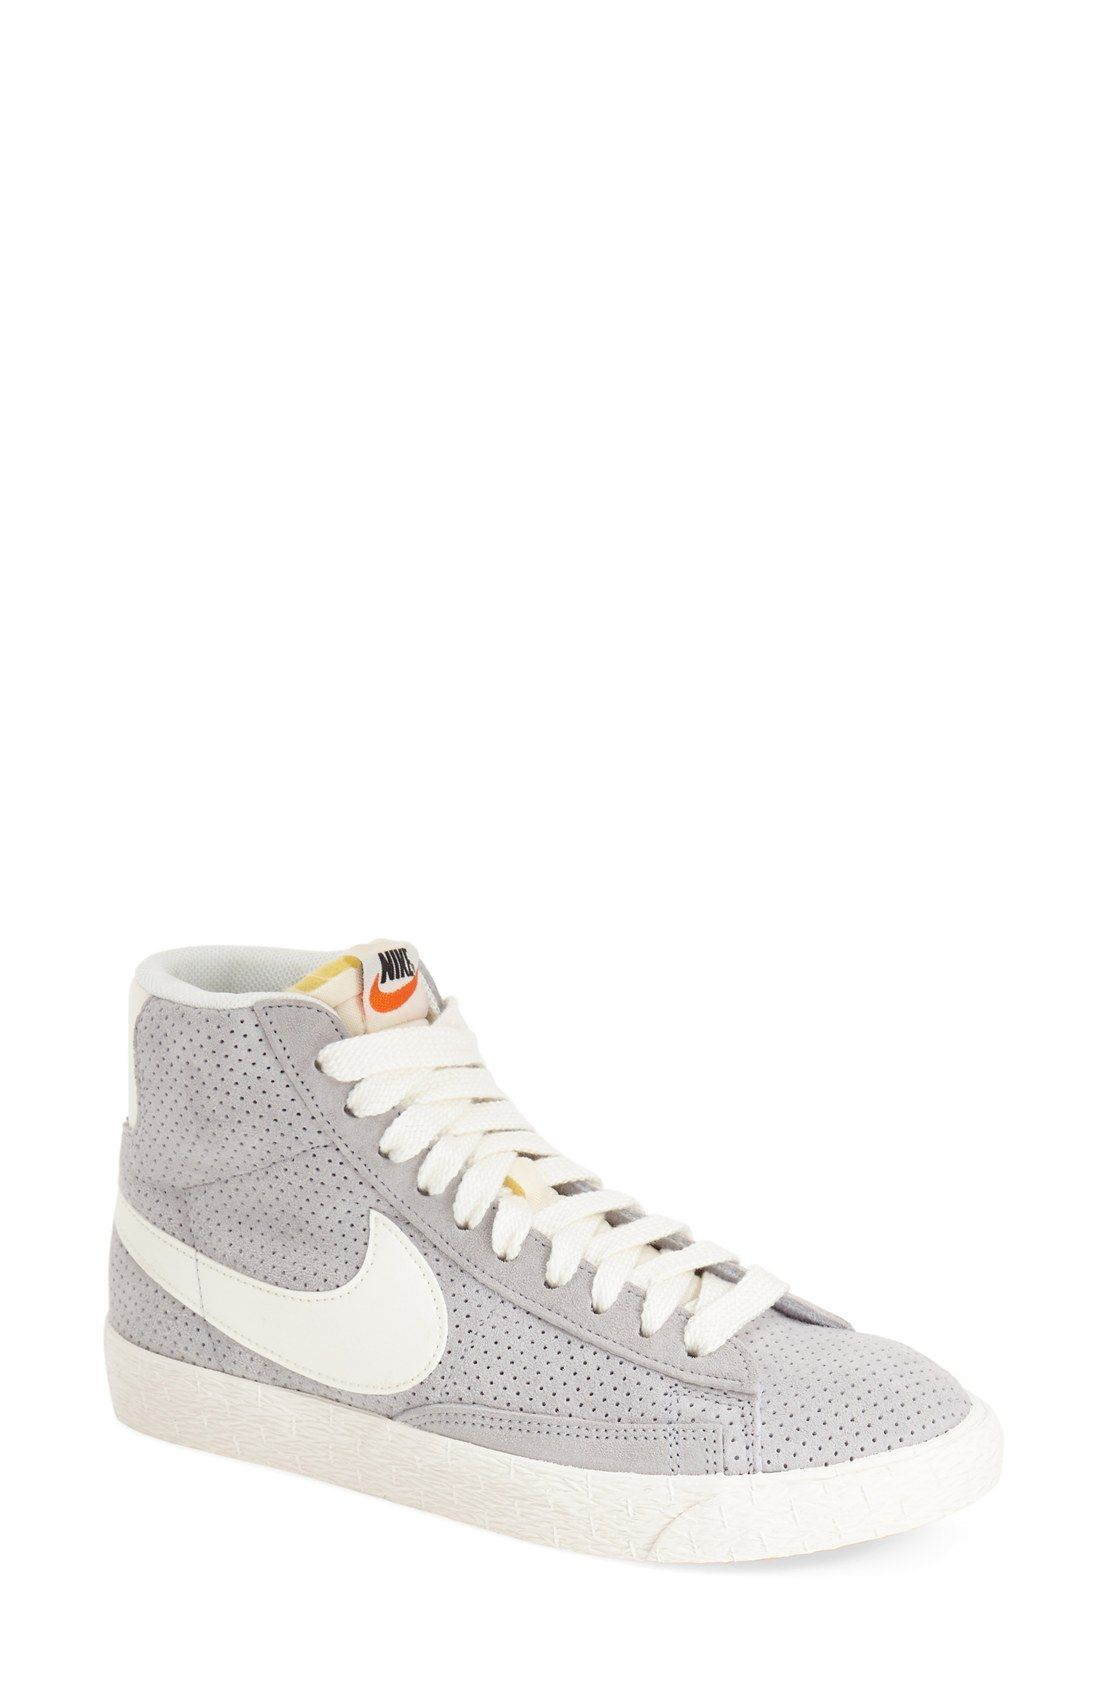 Nike  Blazer  Vintage High Top Basketball Sneaker (Women)  59efff2767